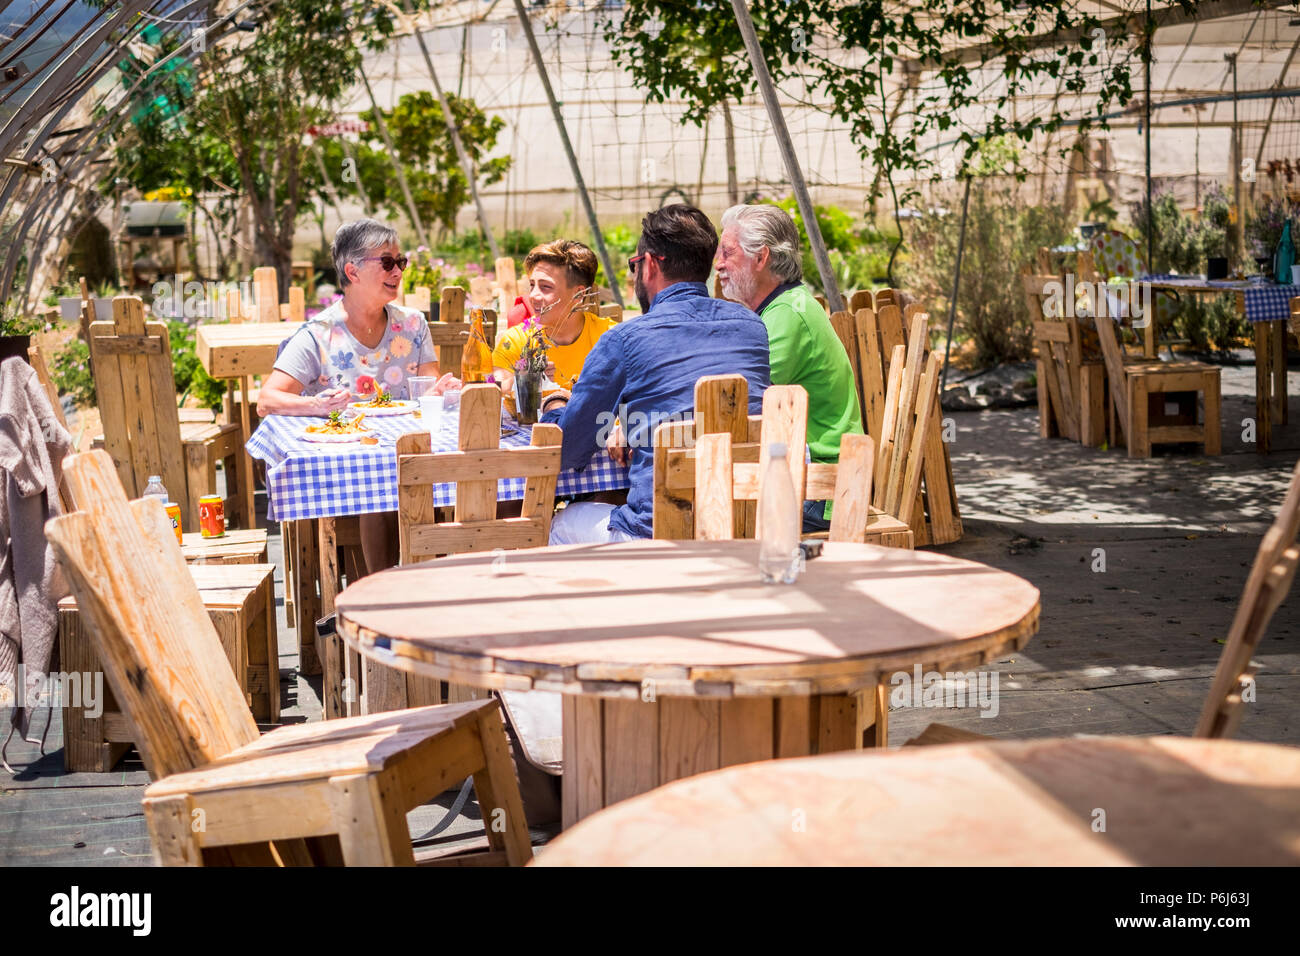 family at lunch together outdoor natural scenic place with a lot of recycled wood furnitures made with pallets. enjoy and smile leisure activity cauca - Stock Image